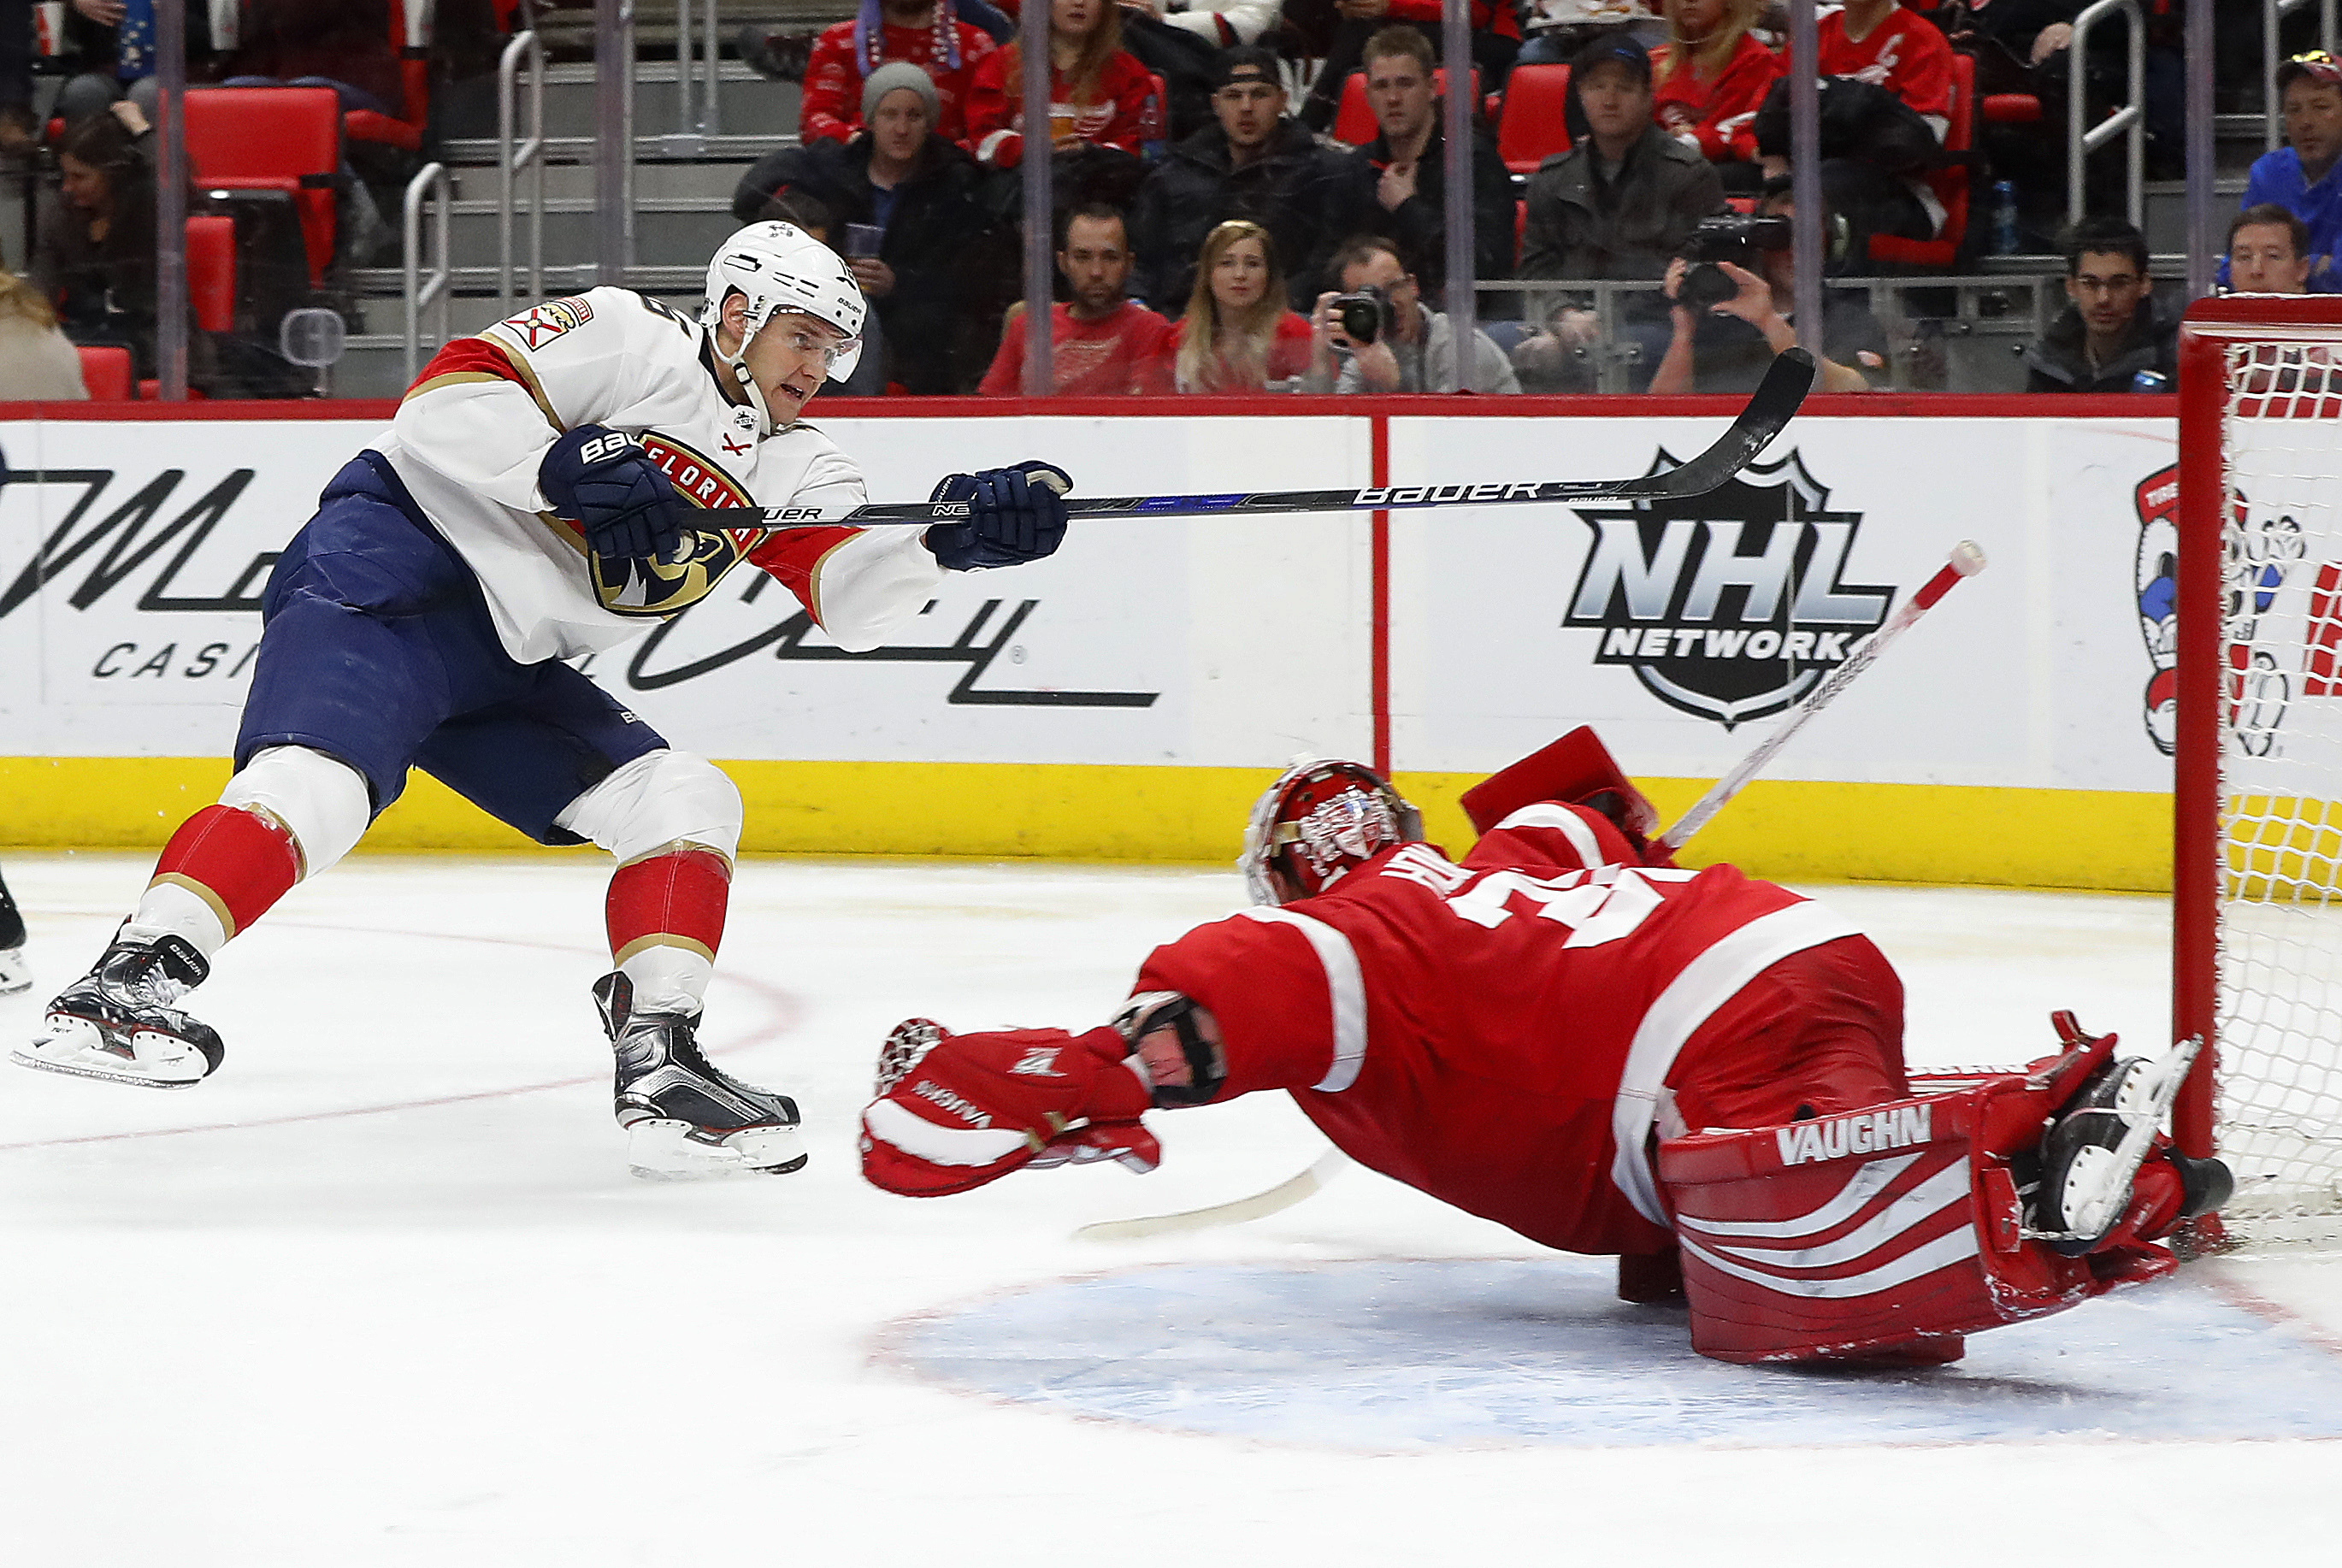 Red Wings top Panthers to win 4th straight - The Blade